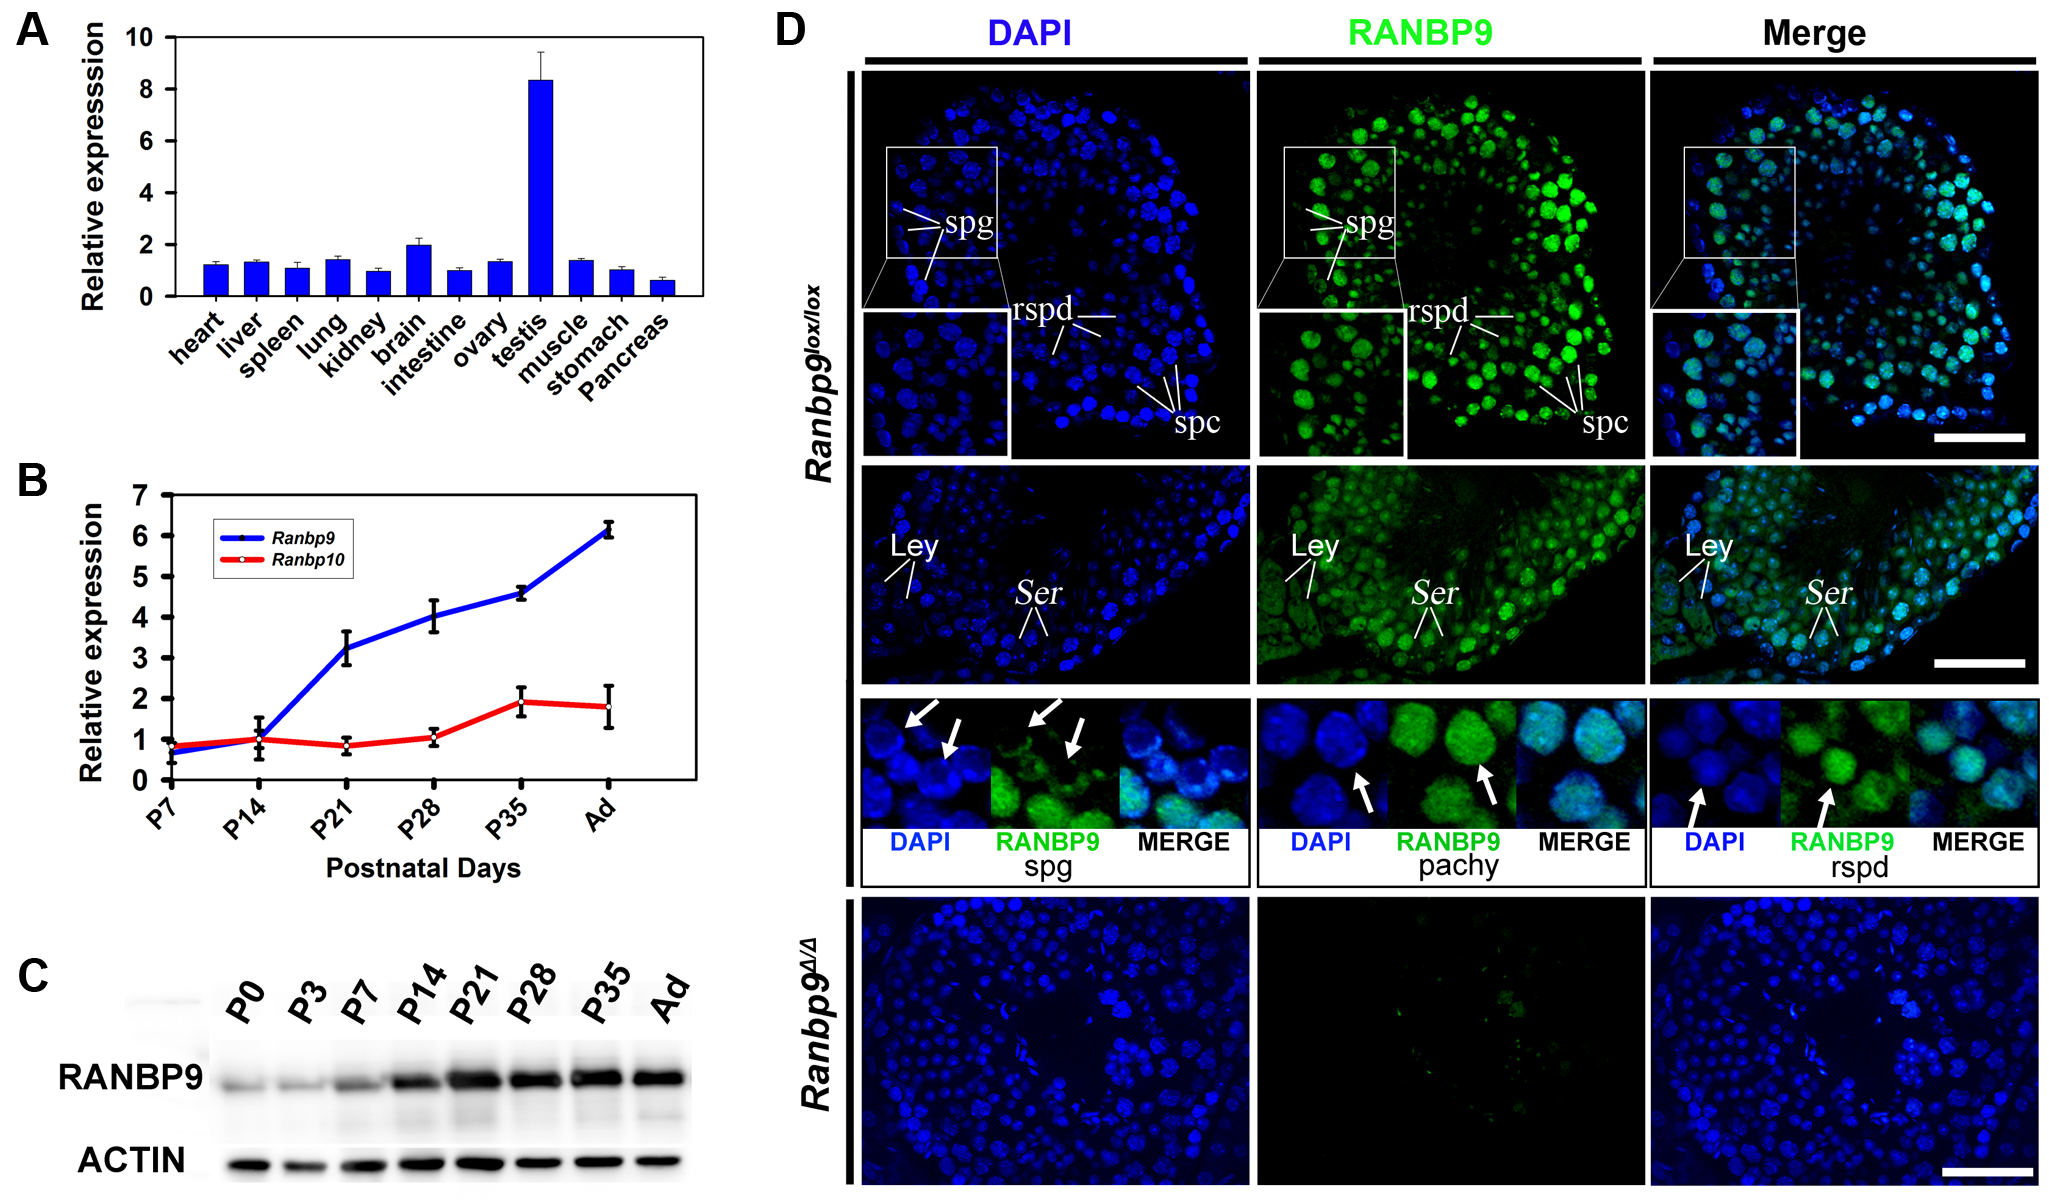 Expression profiles of <i>Ranbp9</i> during testicular development and spermatogenesis in mice.